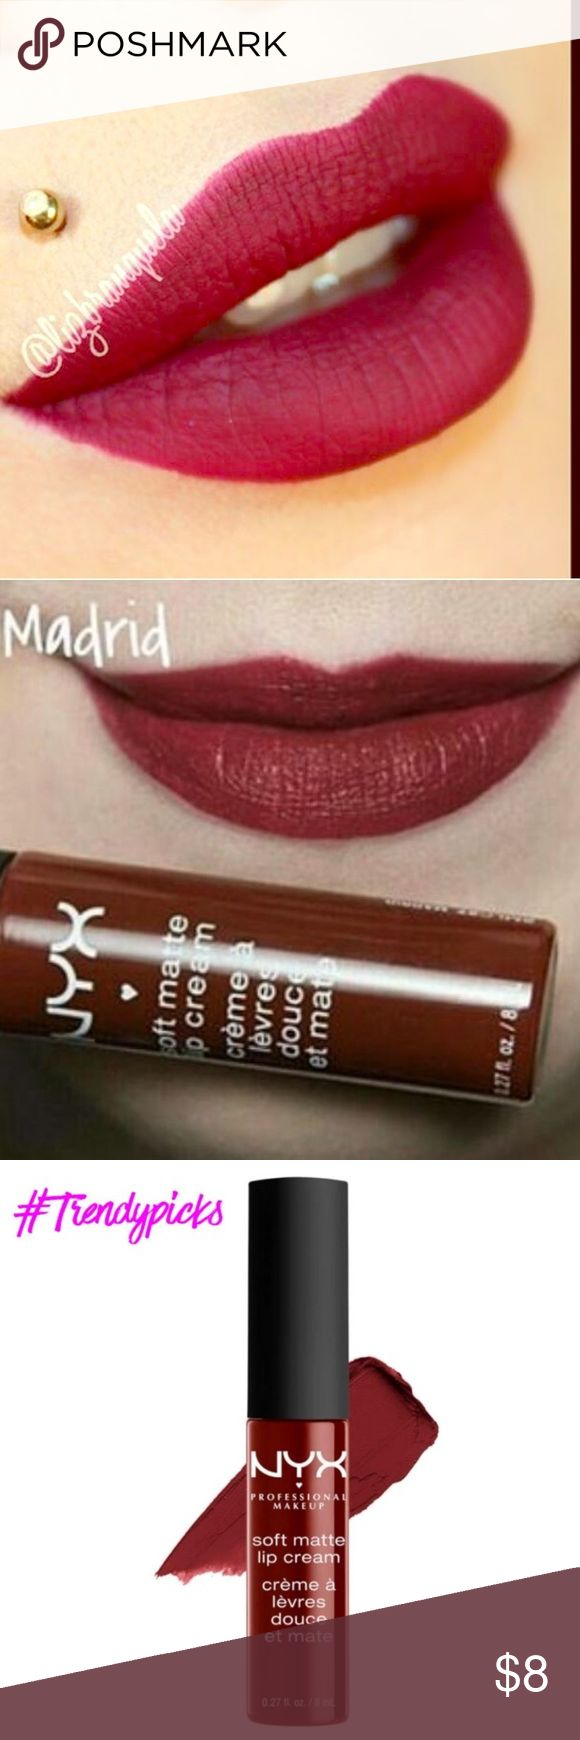 NEW NYX Soft Matte Lip Cream in Madrid NEW NYX Soft Matte Lip Cream in Madrid Brand new super cute soft matte lip cream in Madrid. A sexy red lip color. Cruelty free, sexy, smooth color. Very pigmented and adds a nice finish to any look. Softens lips and gives amazing color without any stickiness. Straight from NYX and is a very popular color. Bundle and save! Free gift with any $20 purchase! Makeup Lipstick